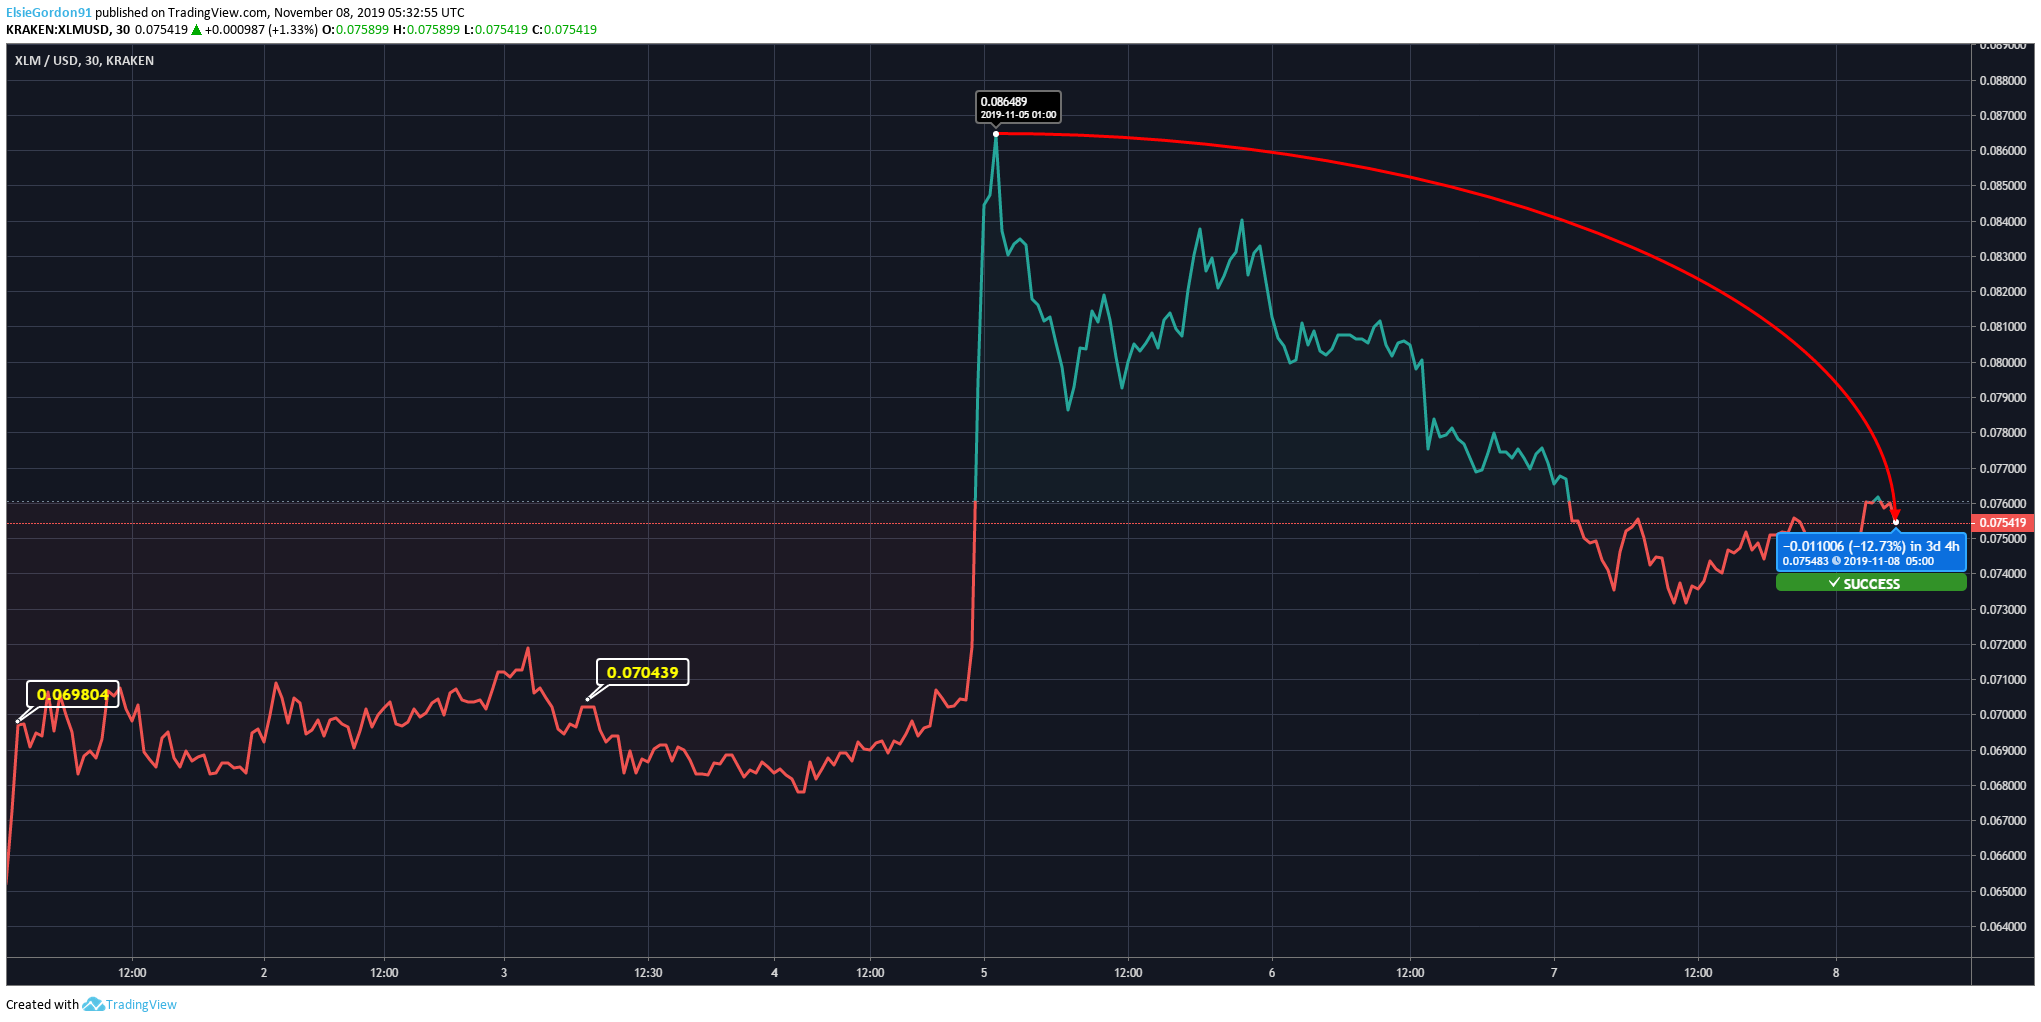 XLM to USD Price Chart